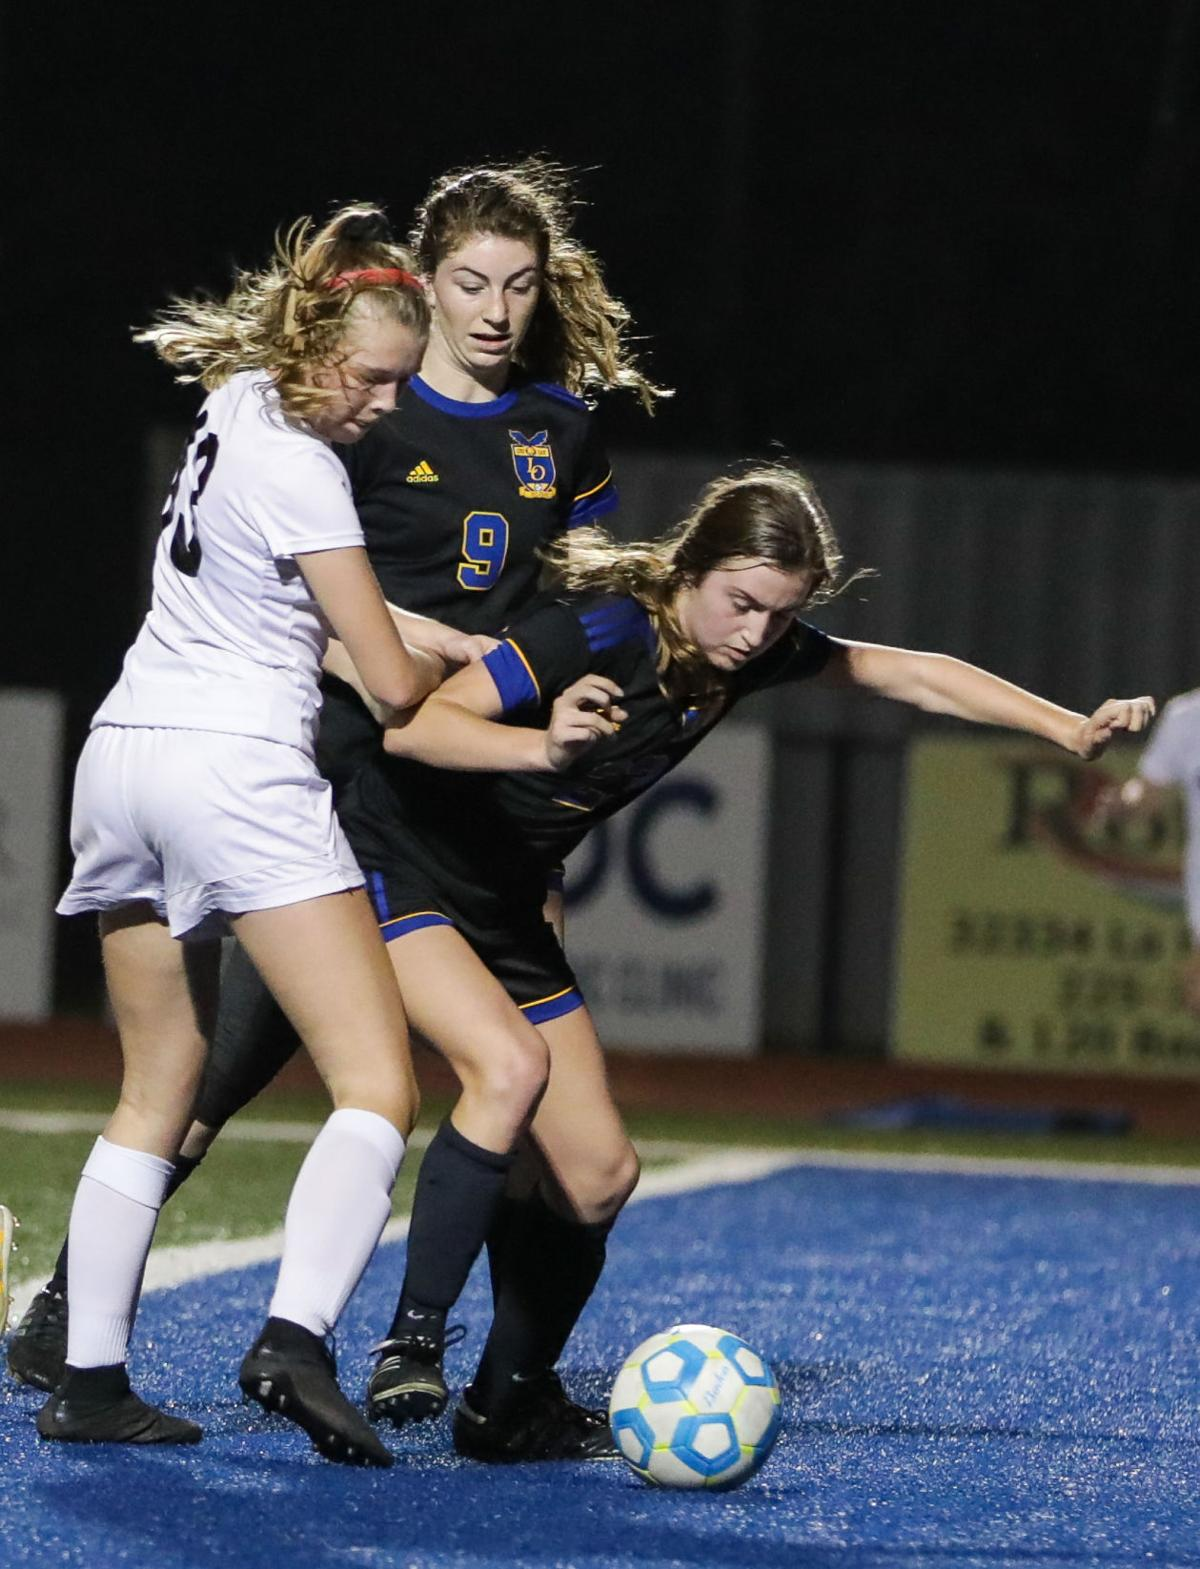 Lakeshore at Live Oak girls soccer Jenna Magee Abby Rink